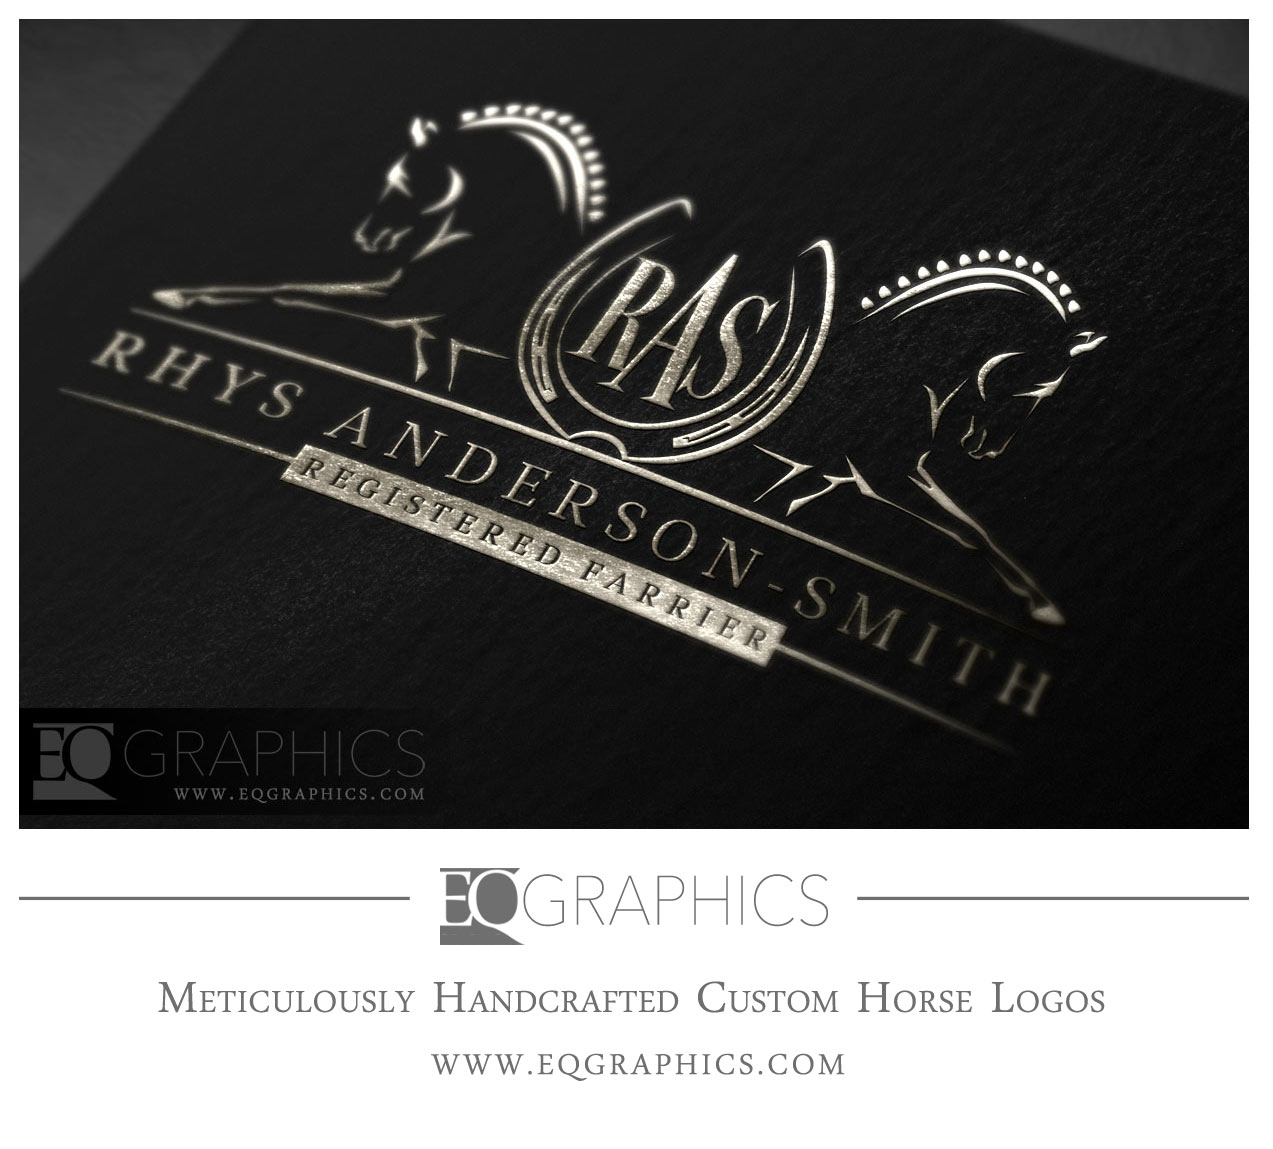 Rhys Anderson Smith Farrier Logo Design by EQ Graphics Horse Logos